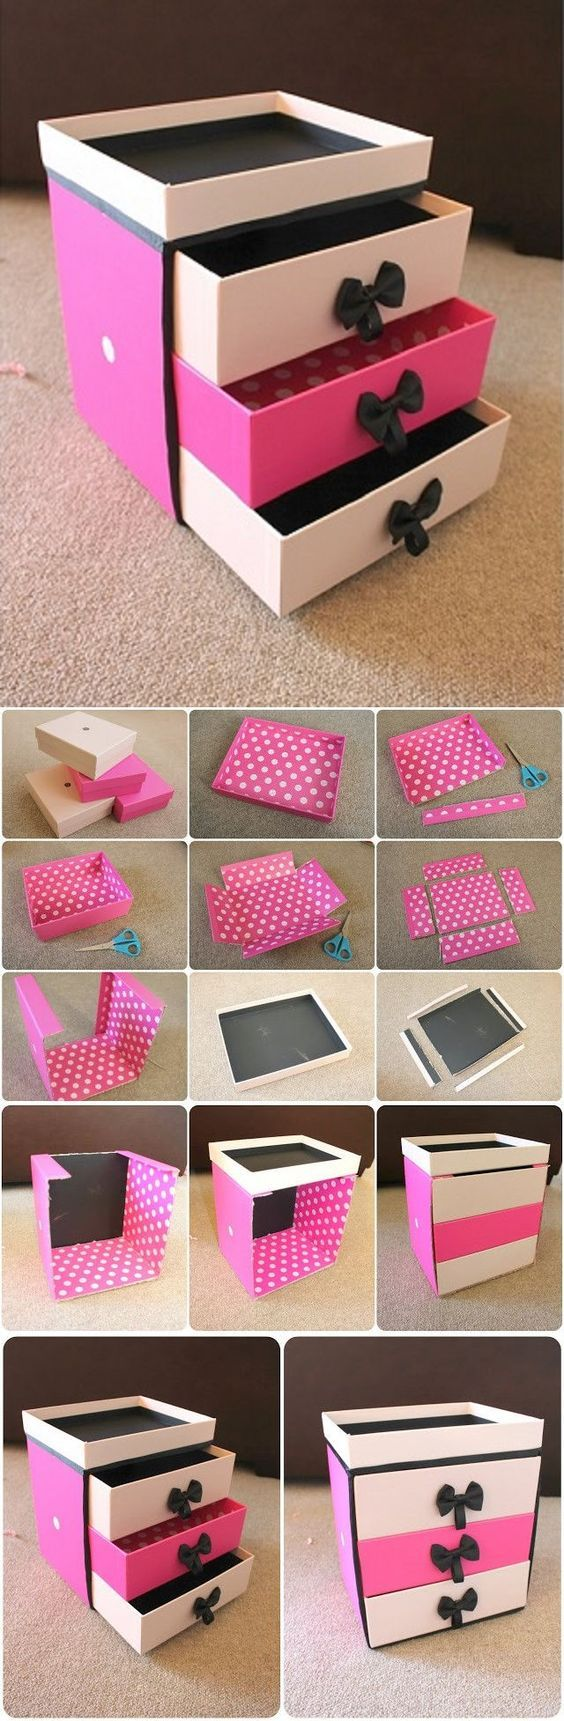 Diy Storage Box u2013 The Creative Way To Get Rid Of Clutter And Be Organized & 9 best Diy Storage Box u2013 The Creative Way To Get Rid Of Clutter ... Aboutintivar.Com